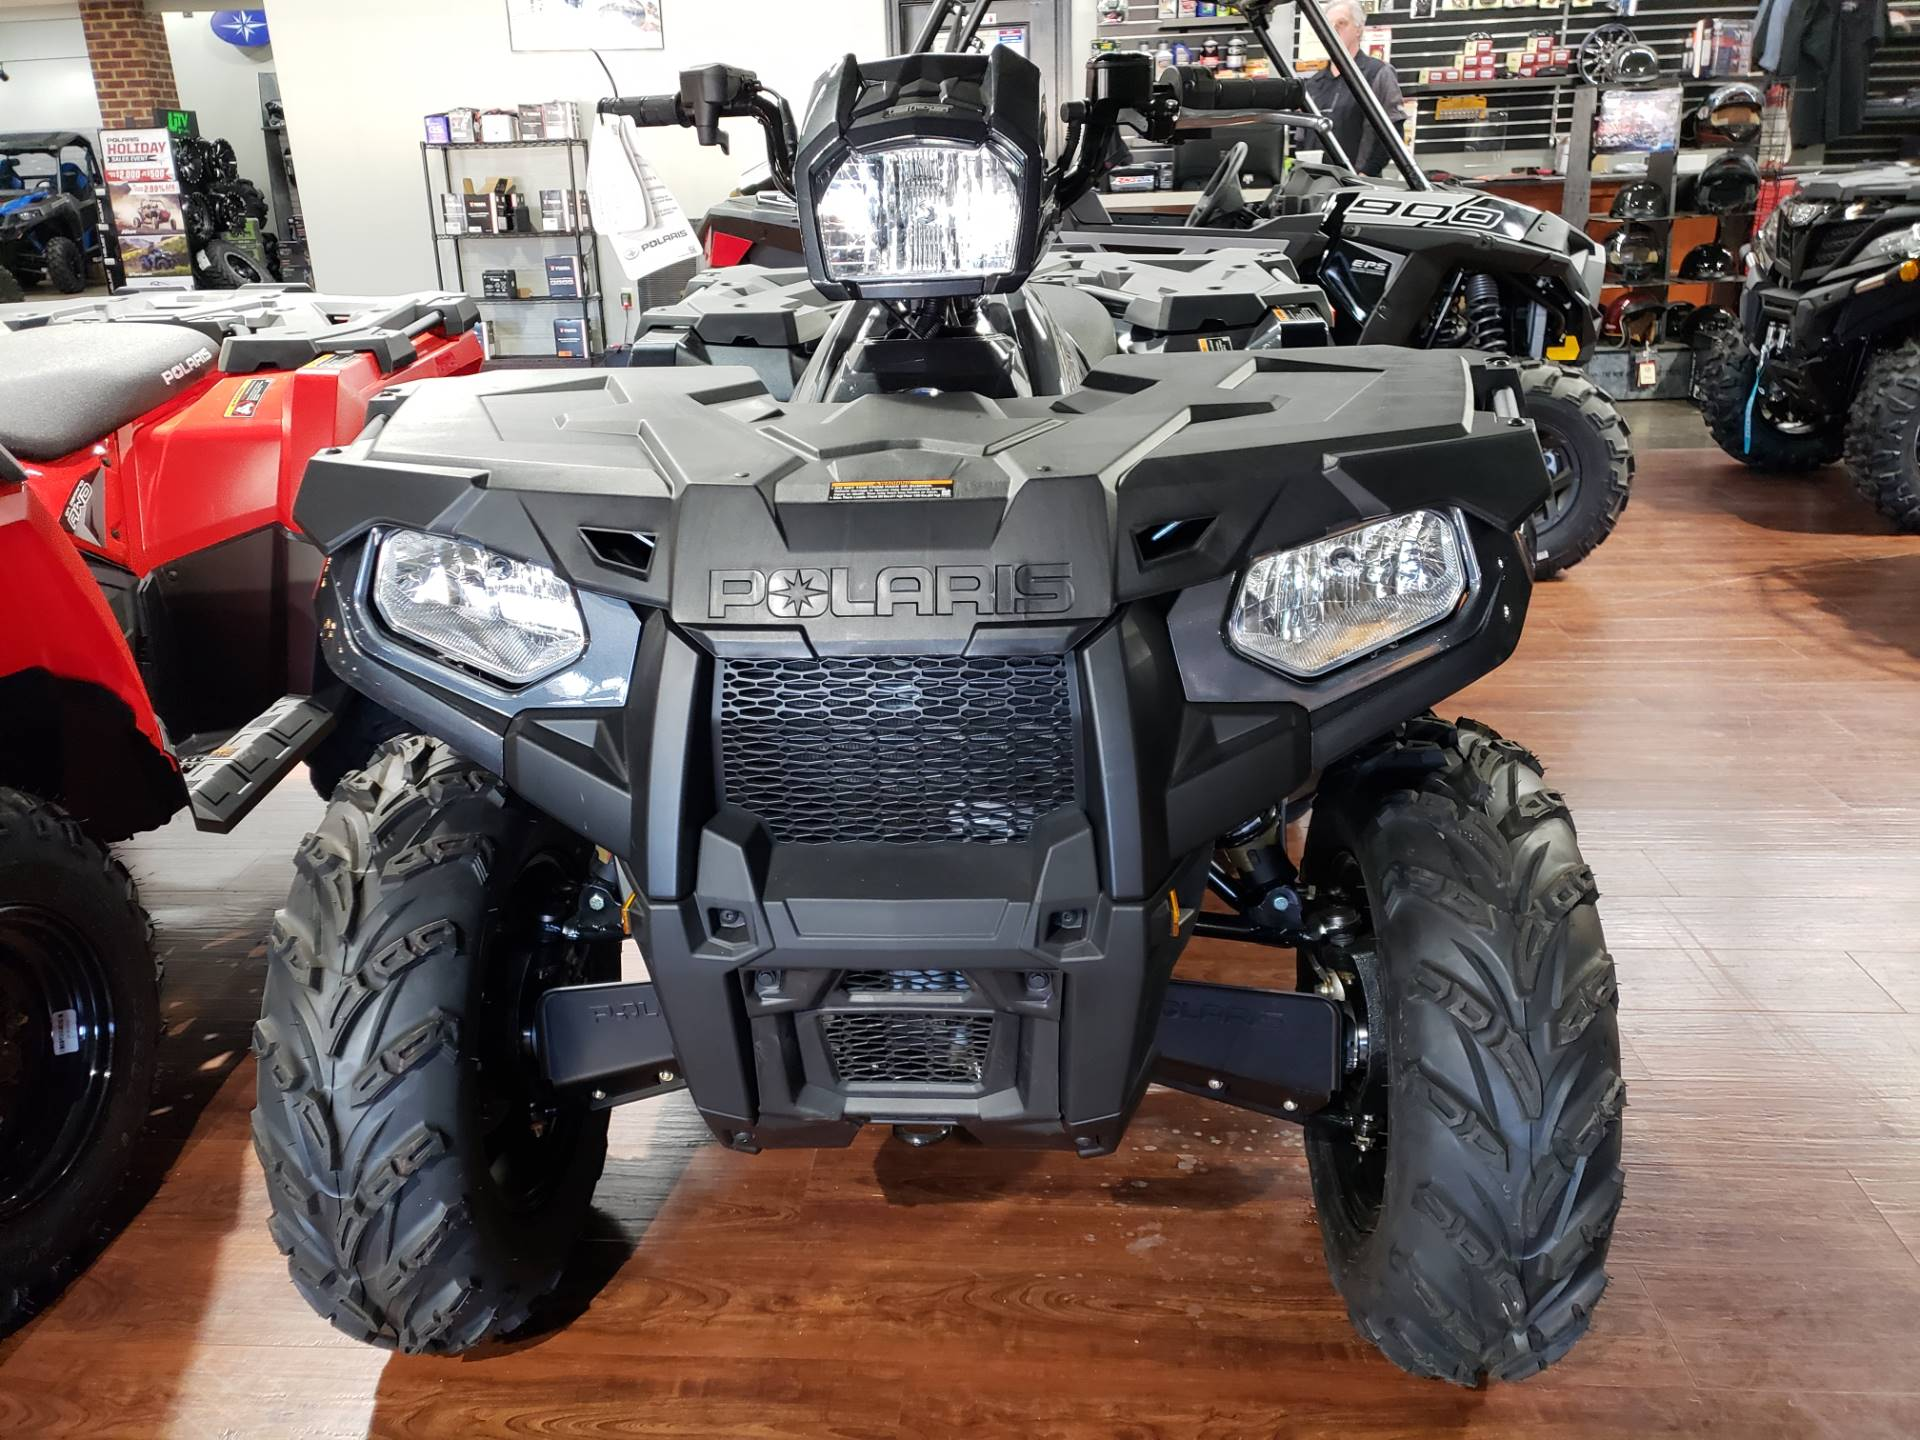 2019 Polaris Sportsman 570 SP in Greer, South Carolina - Photo 4